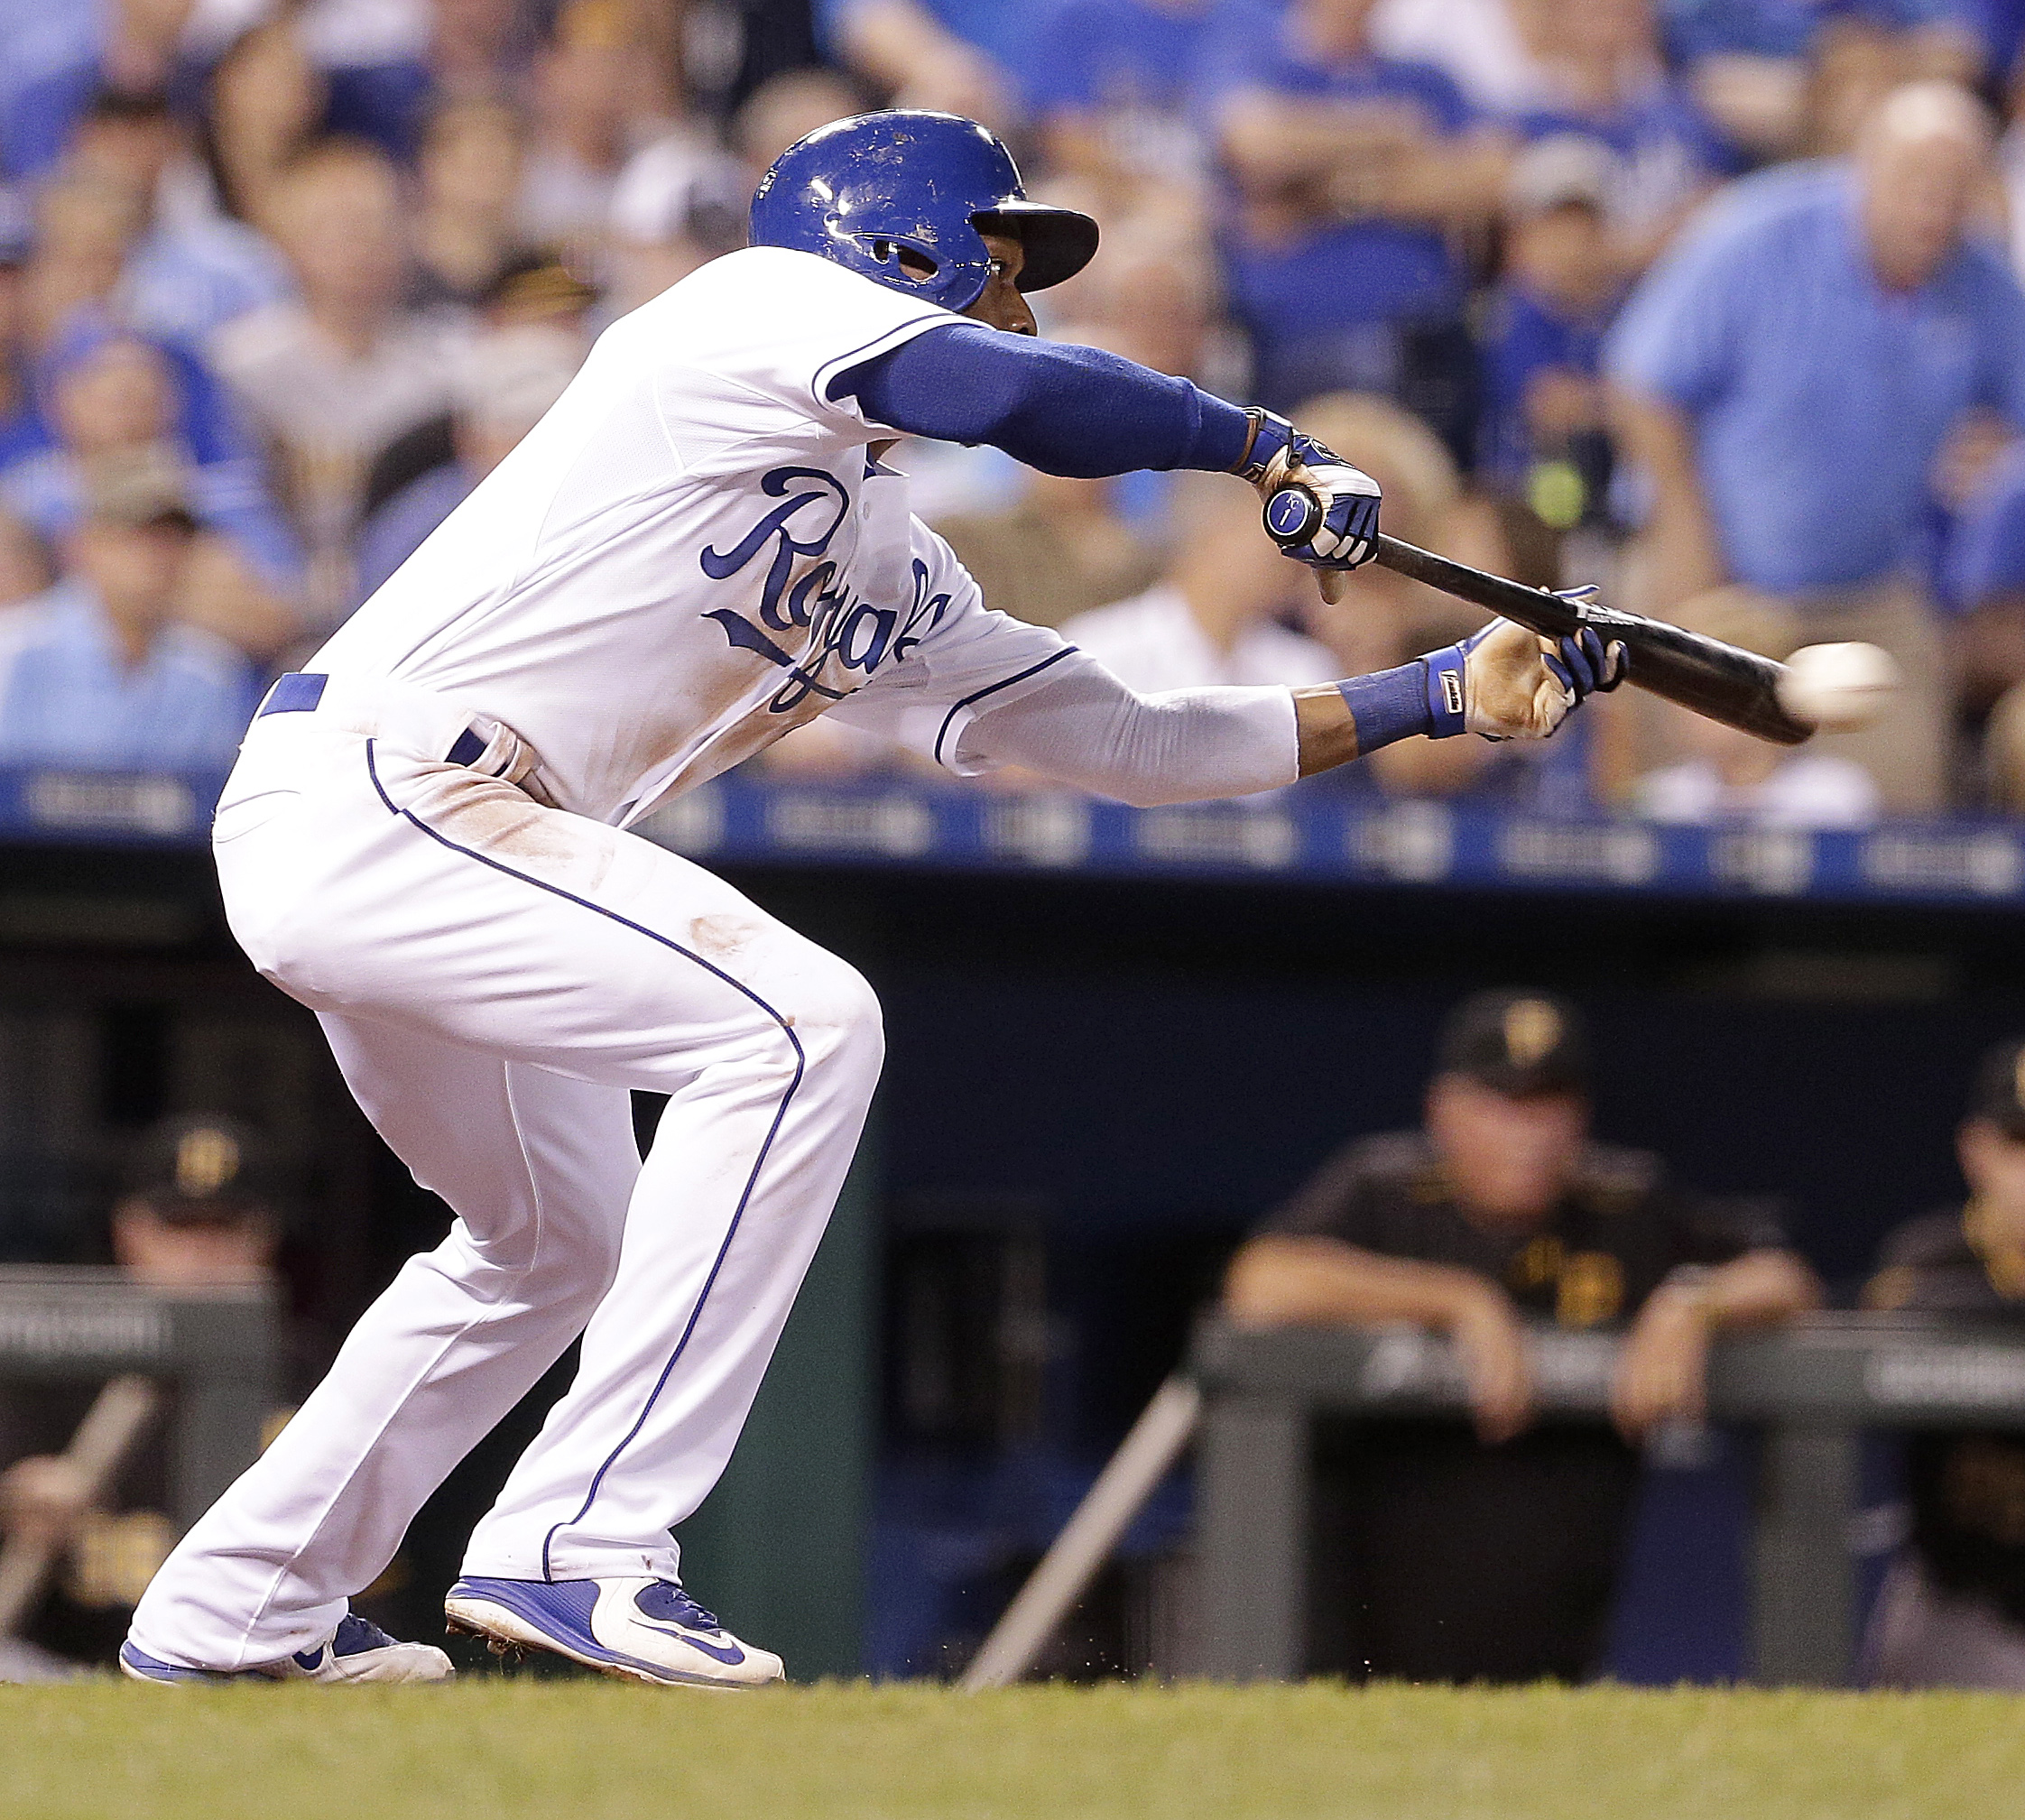 Kansas City Royals' Jarrod Dyson hits a bunt single to score Omar Infante during the seventh inning of a baseball game against the Pittsburgh Pirates Wednesday, July 22, 2015, in Kansas City, Mo. (AP Photo/Charlie Riedel)